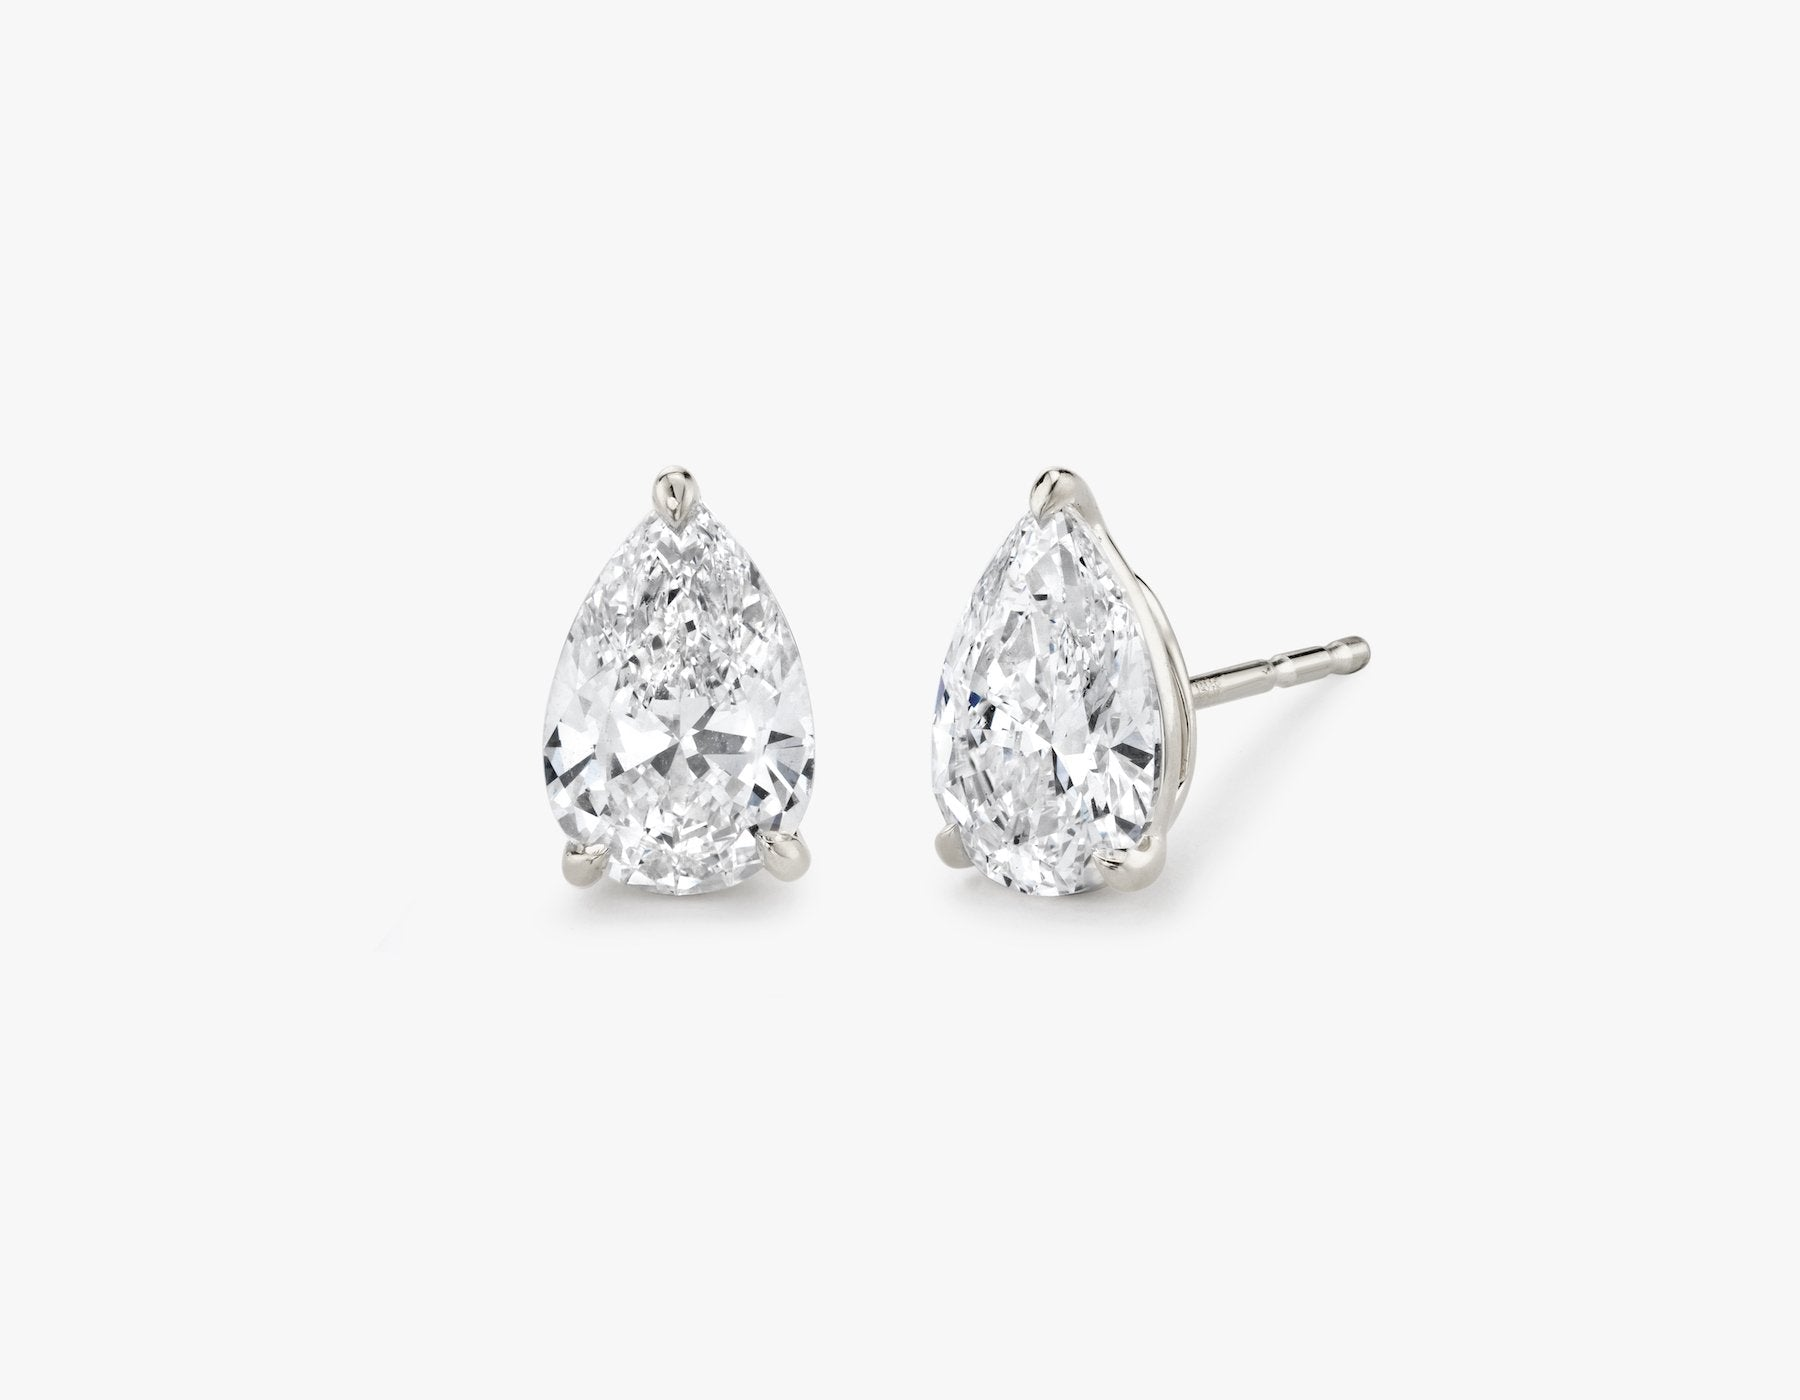 Vrai 14K solid gold solitaire pear diamond studs earrings 1ct minimalist delicate, 14K White Gold